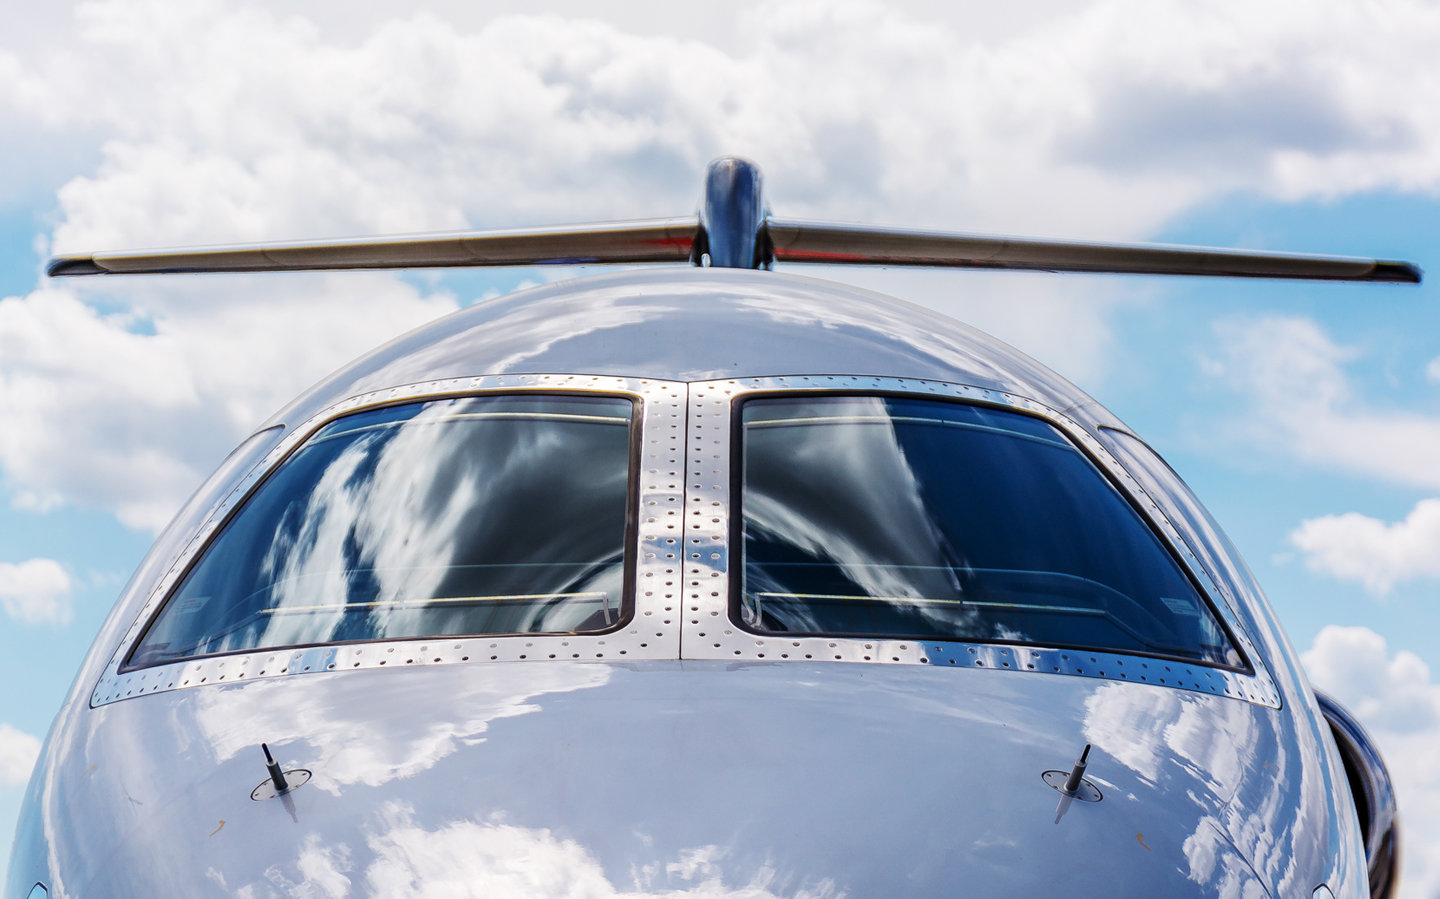 Privé Jets Featured in an Article on Worthly